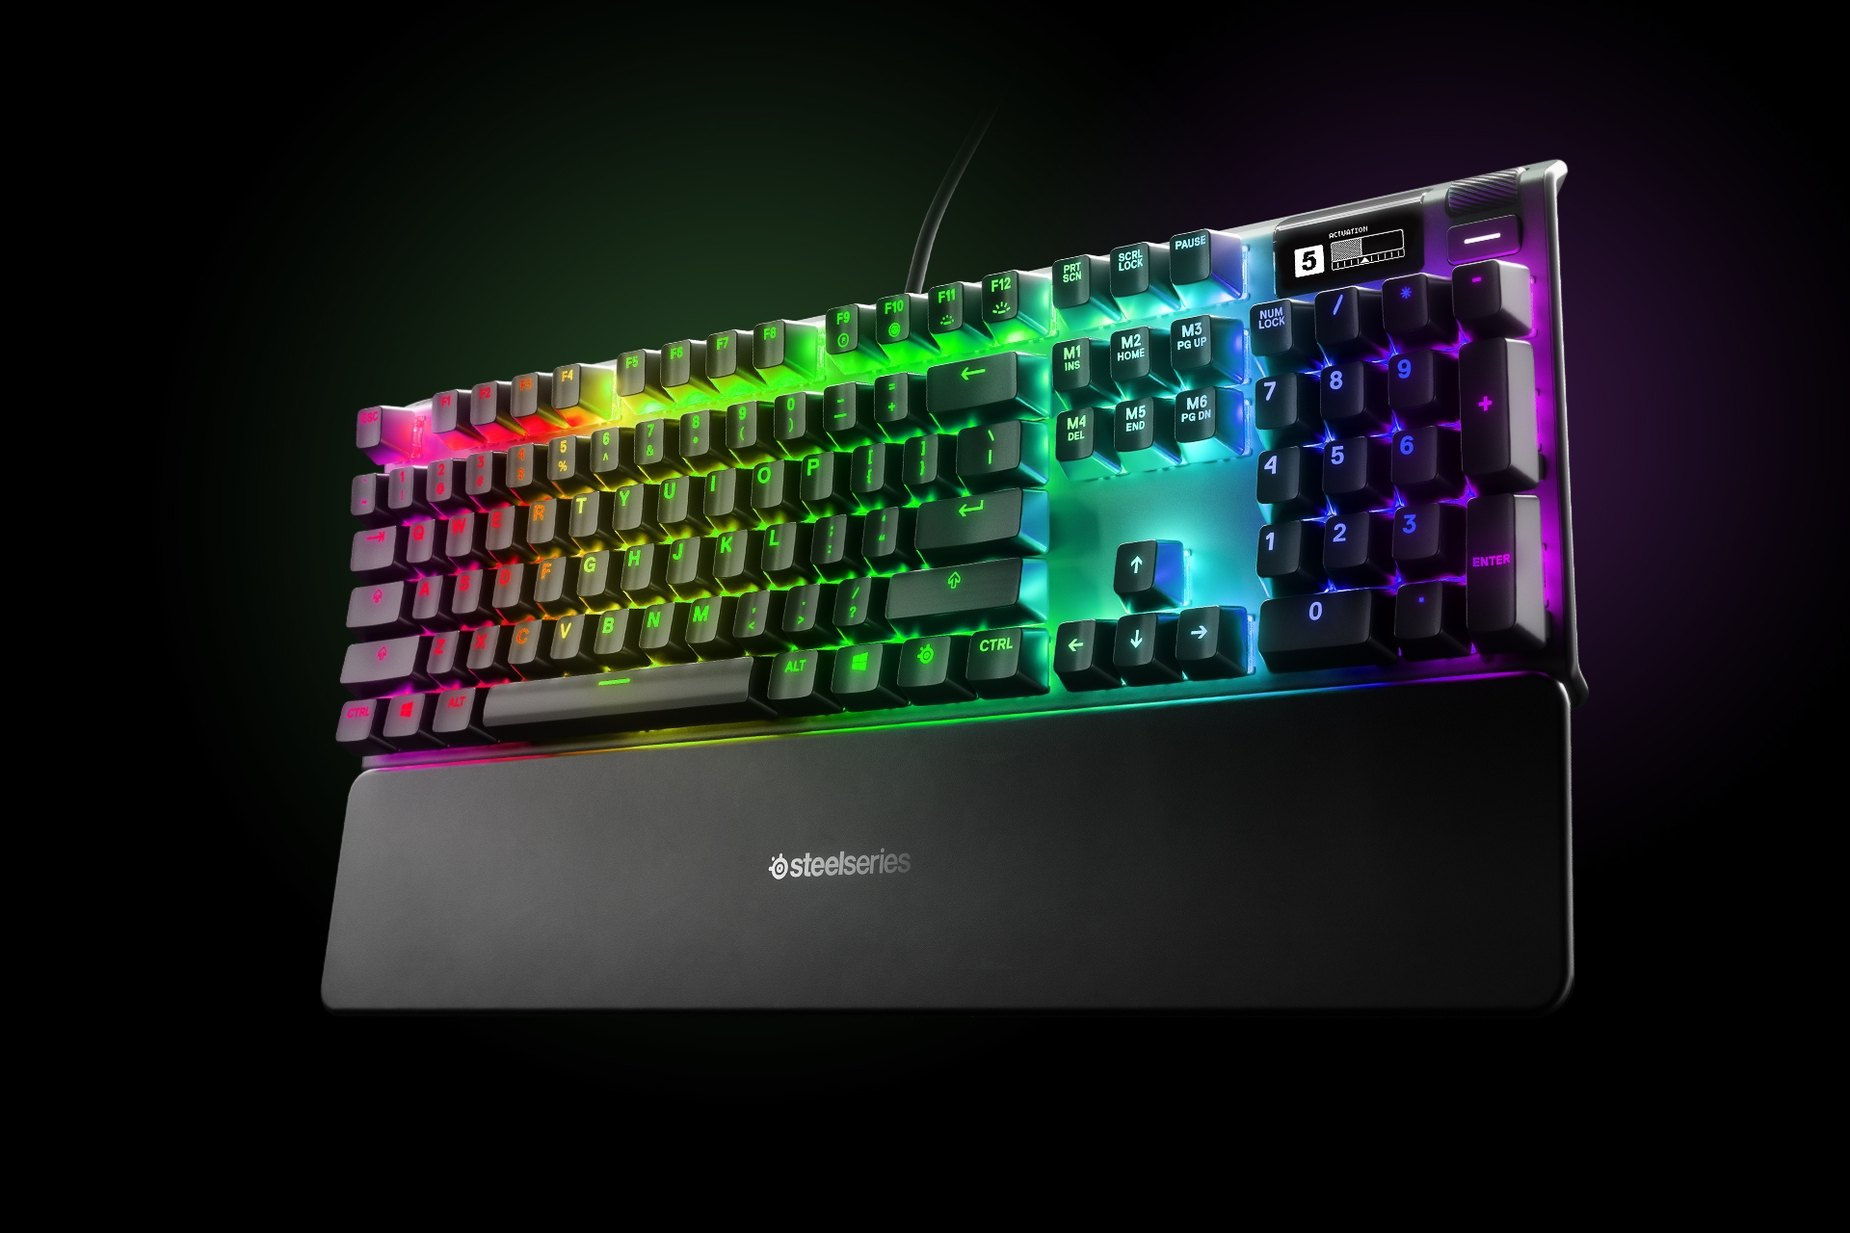 Tayvanca - Apex Pro gaming keyboard with the illumination lit up on dark background, also shows the OLED screen and controls used to change settings, switch actuation, and adjust audio